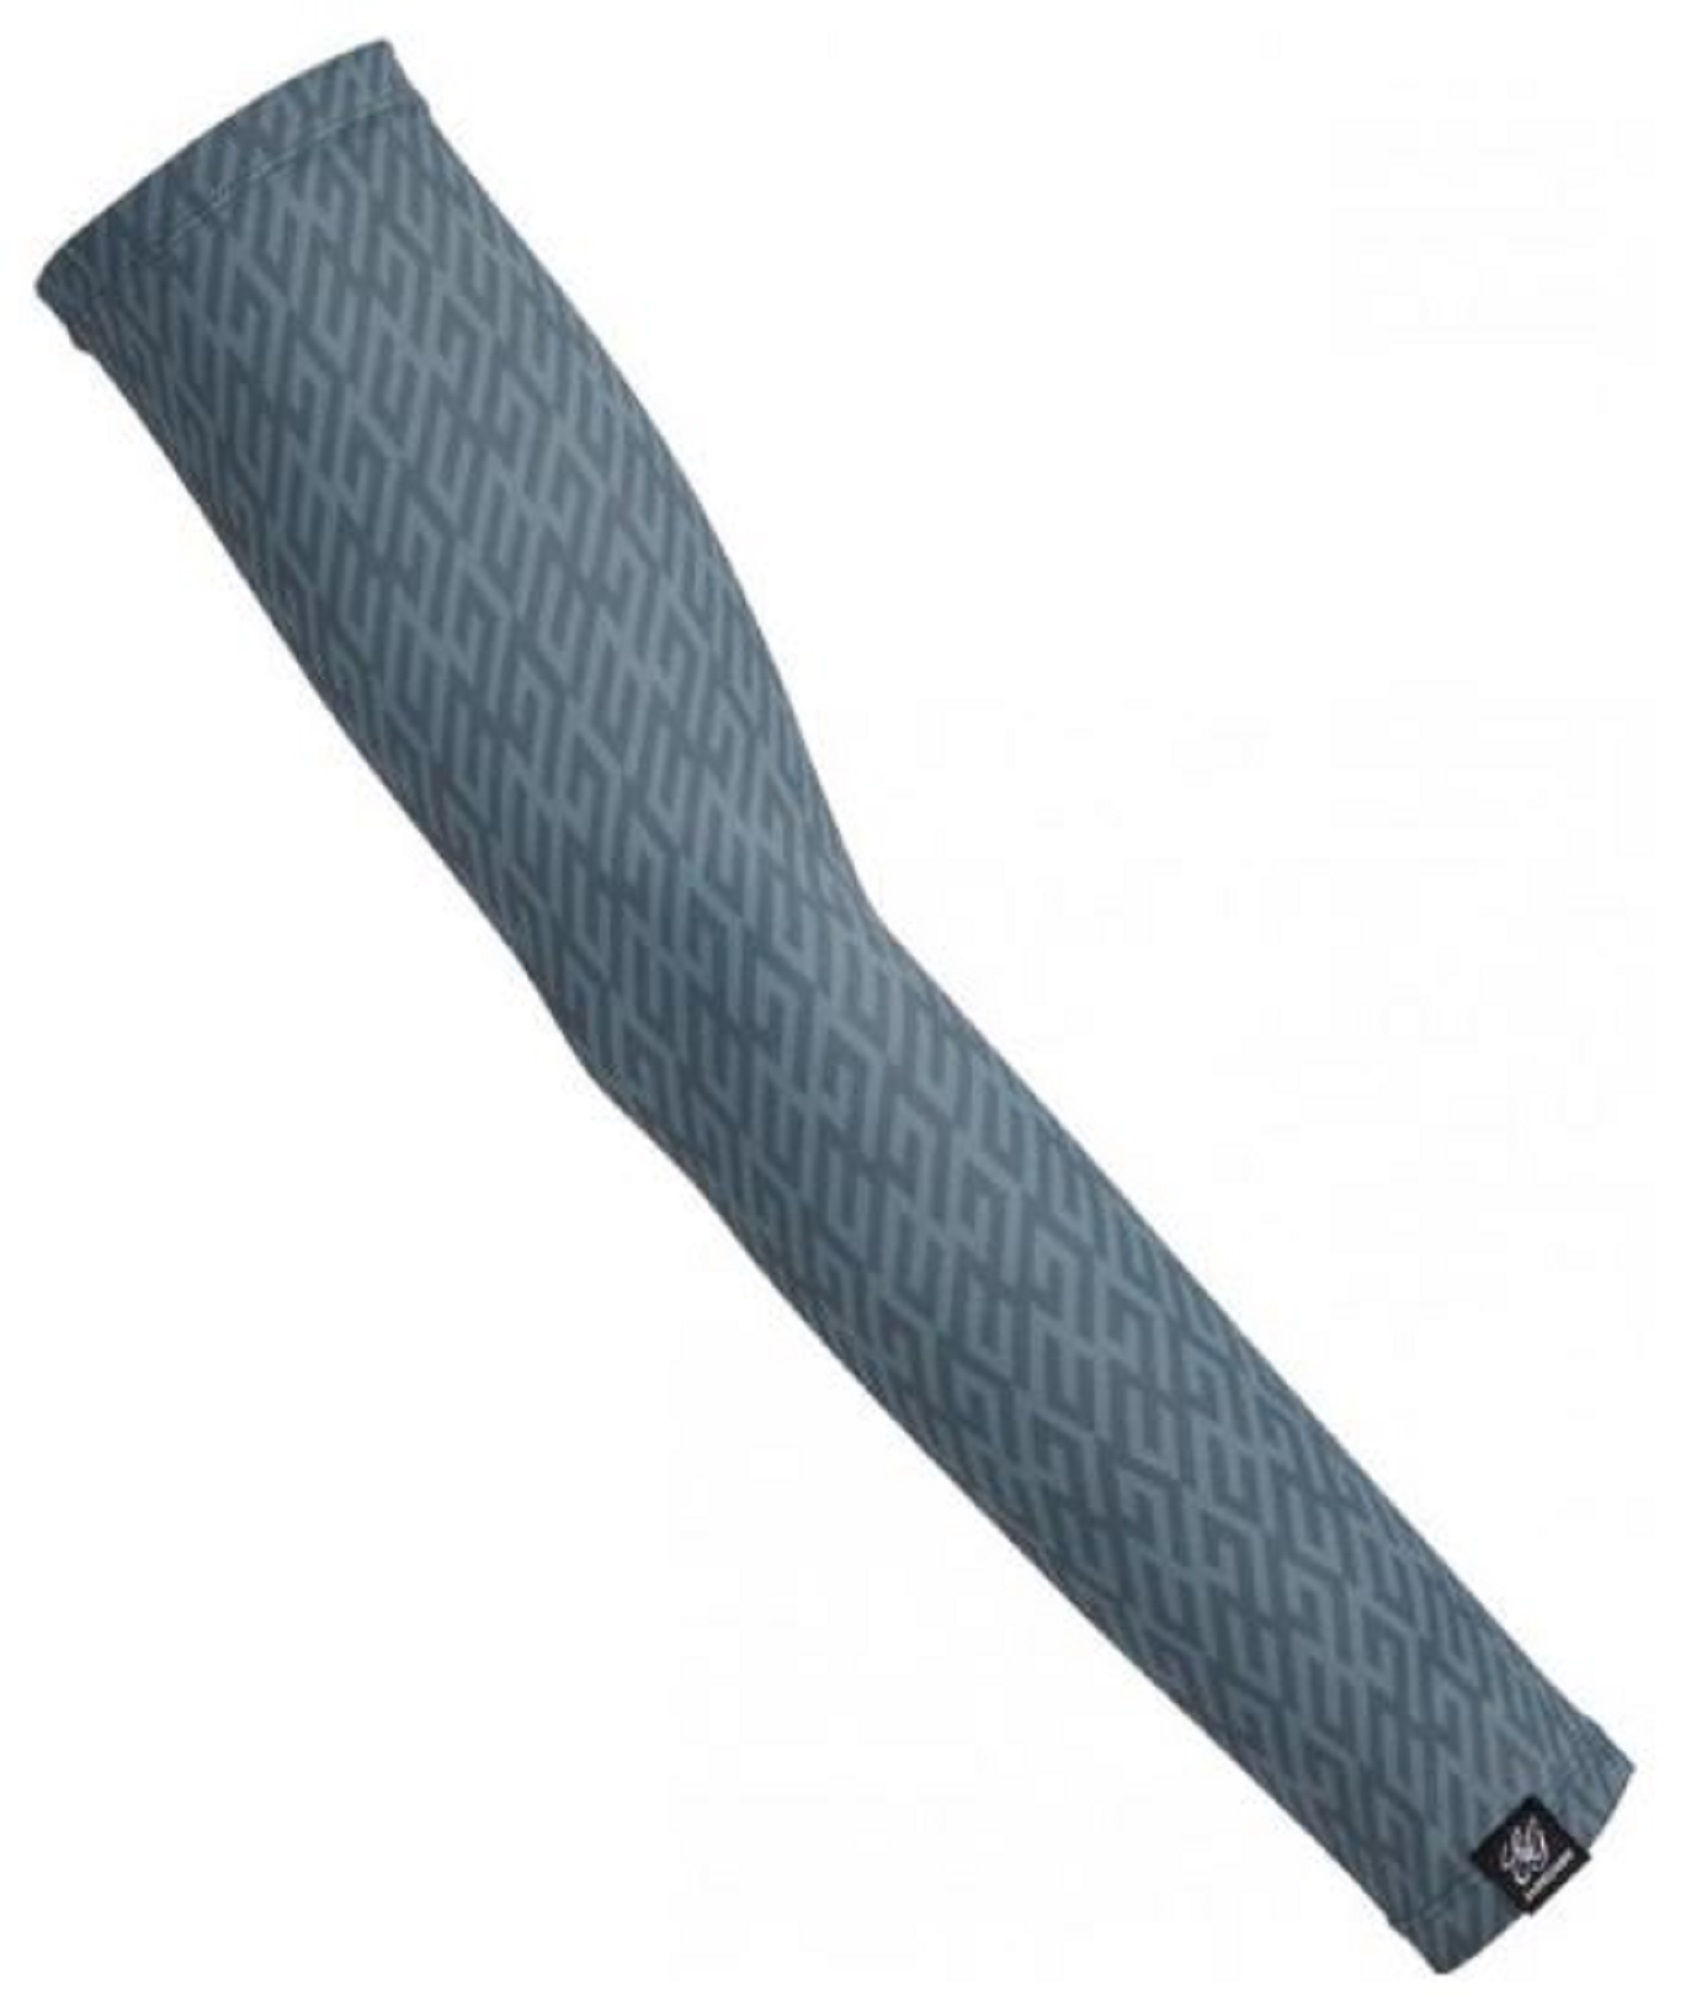 Evergreen Arm Sleeve Cover Size L EG Gray (2230)